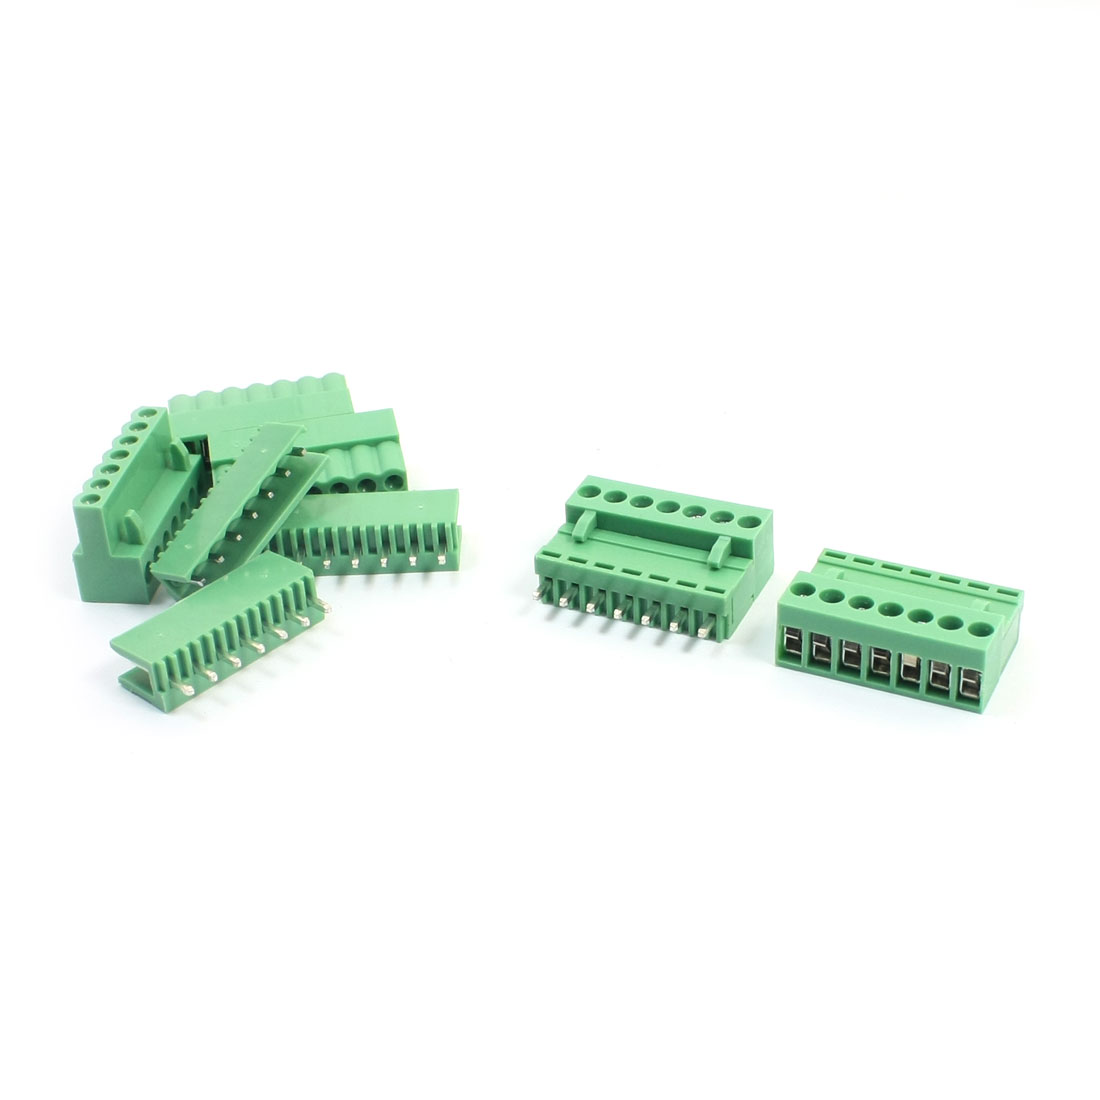 AC300V 10A 3.96mm Spacing 14-26AWG 7P Straight Pluggable in Through Hole Mounting Green PCB Screw Terminal Block Connector 5Pcs